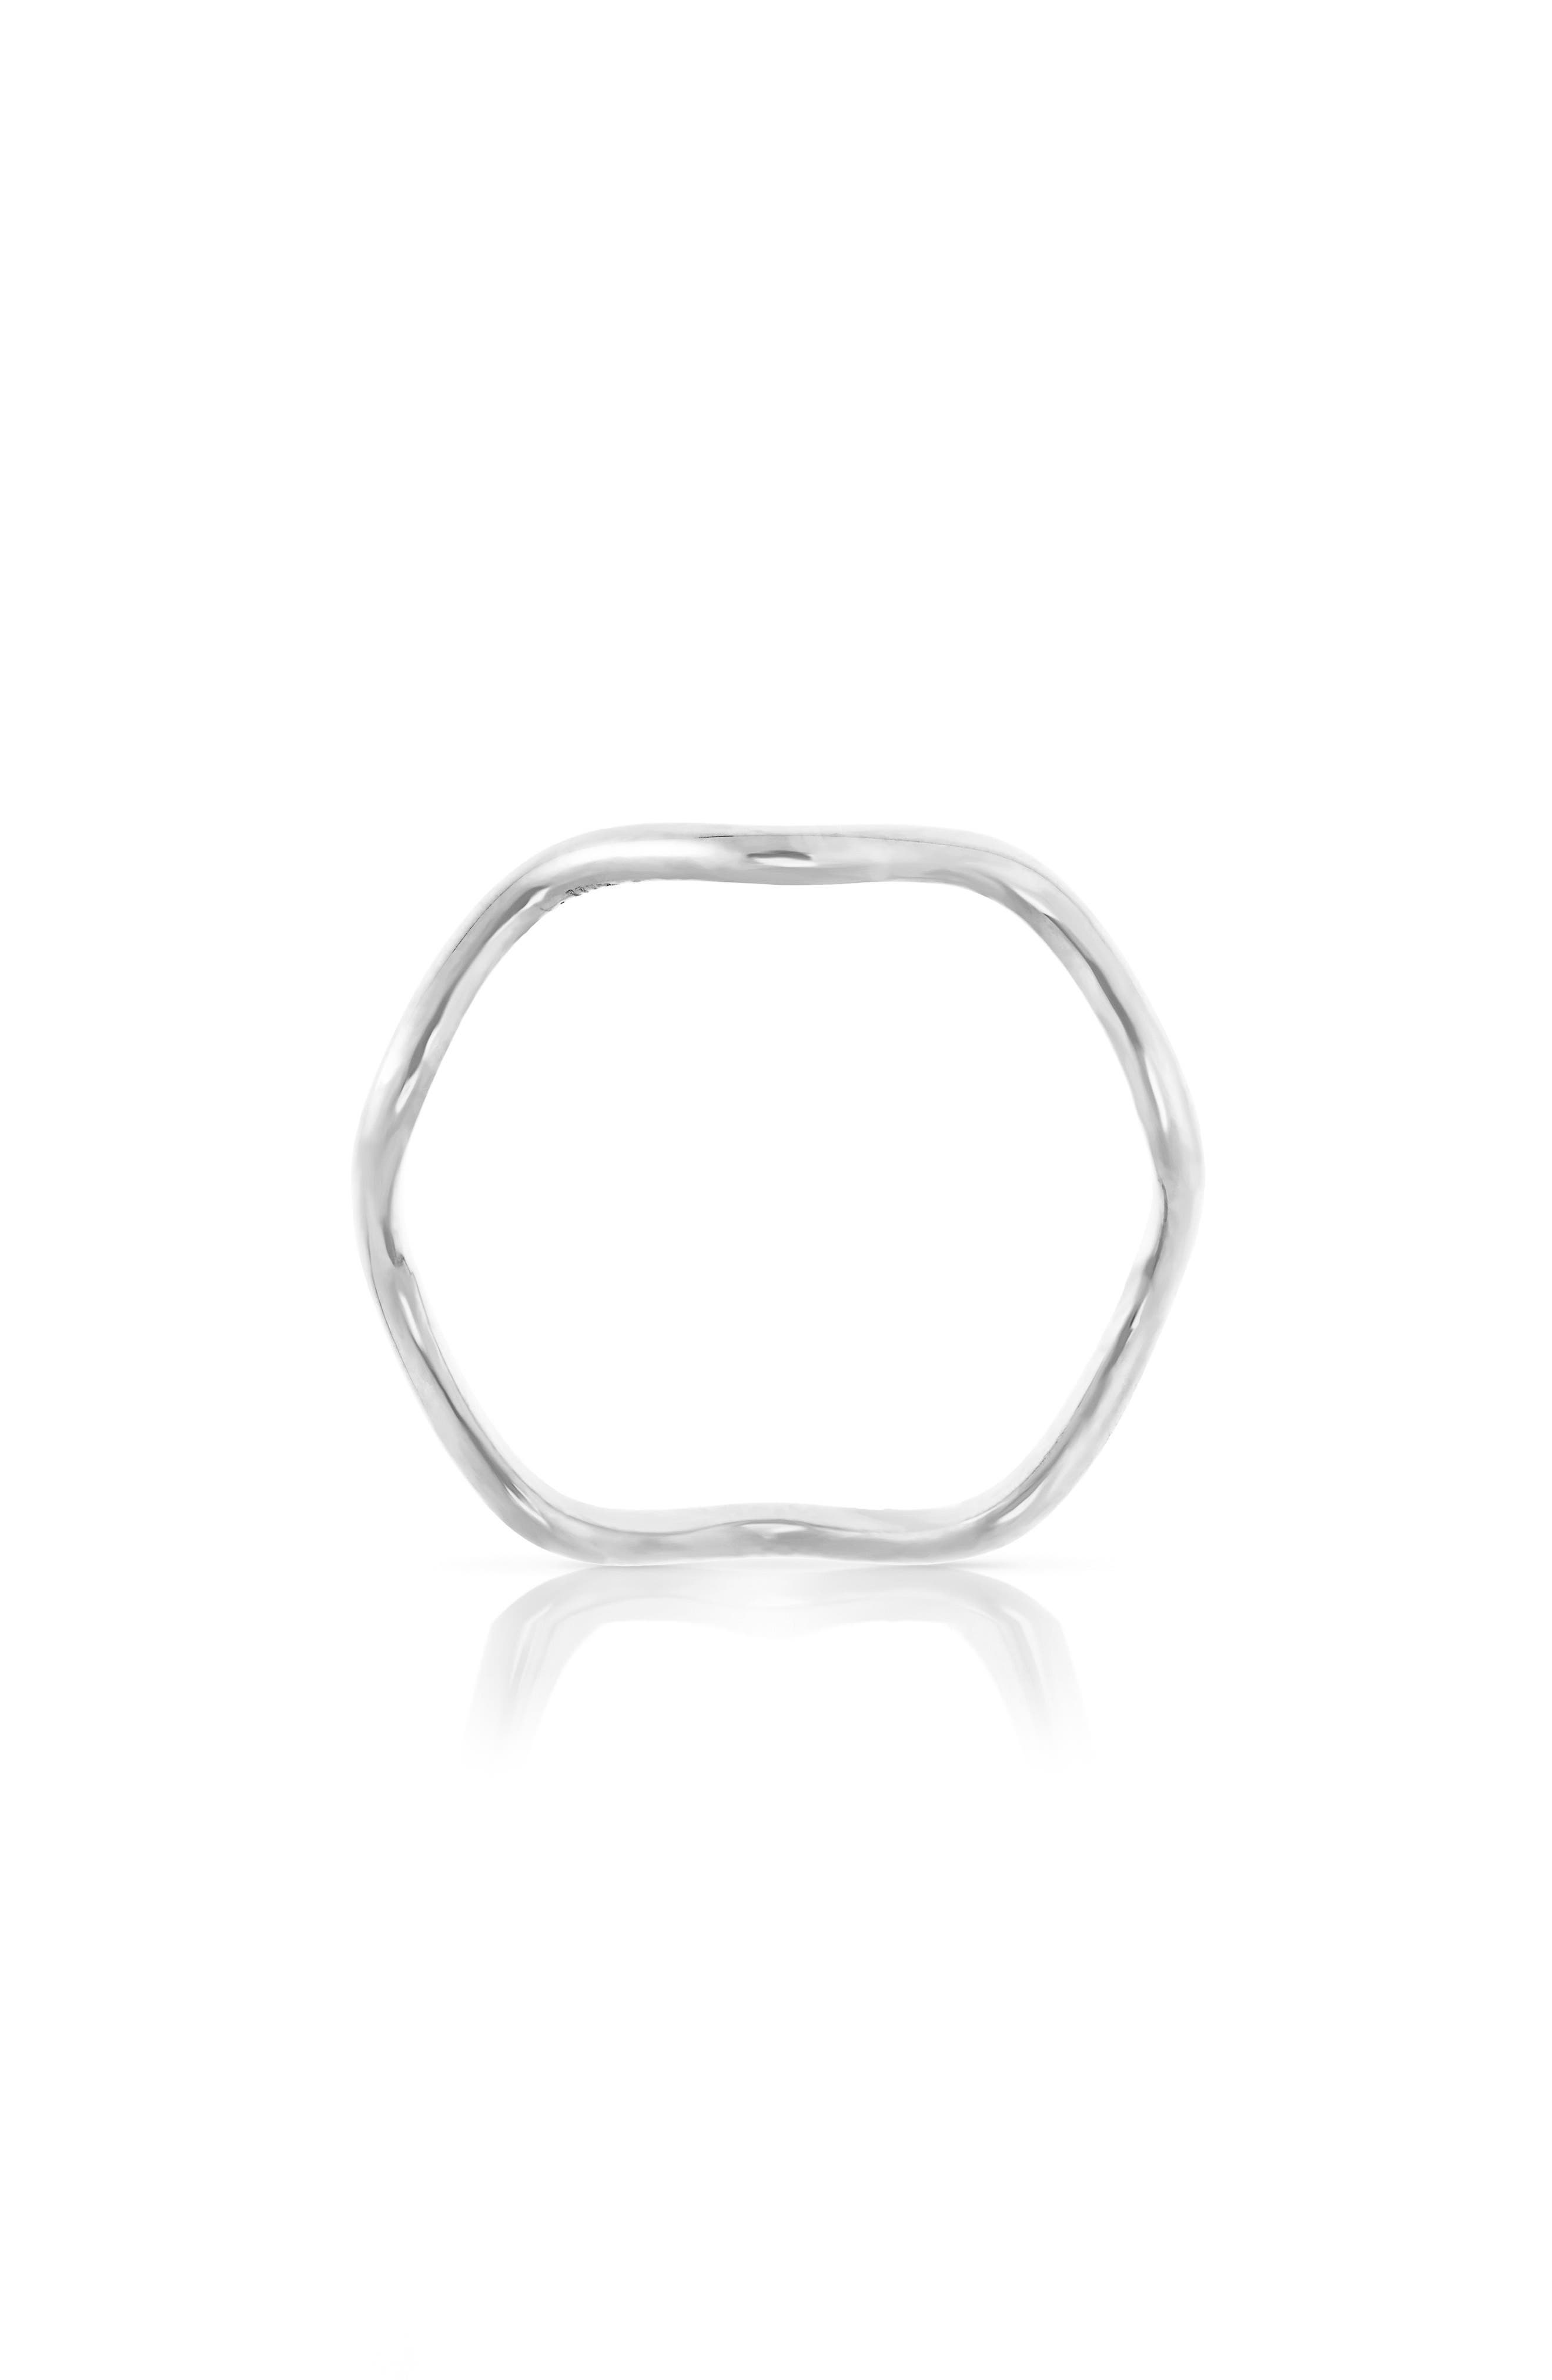 Baby Memphis Wave Band Ring,                             Alternate thumbnail 3, color,                             White Gold